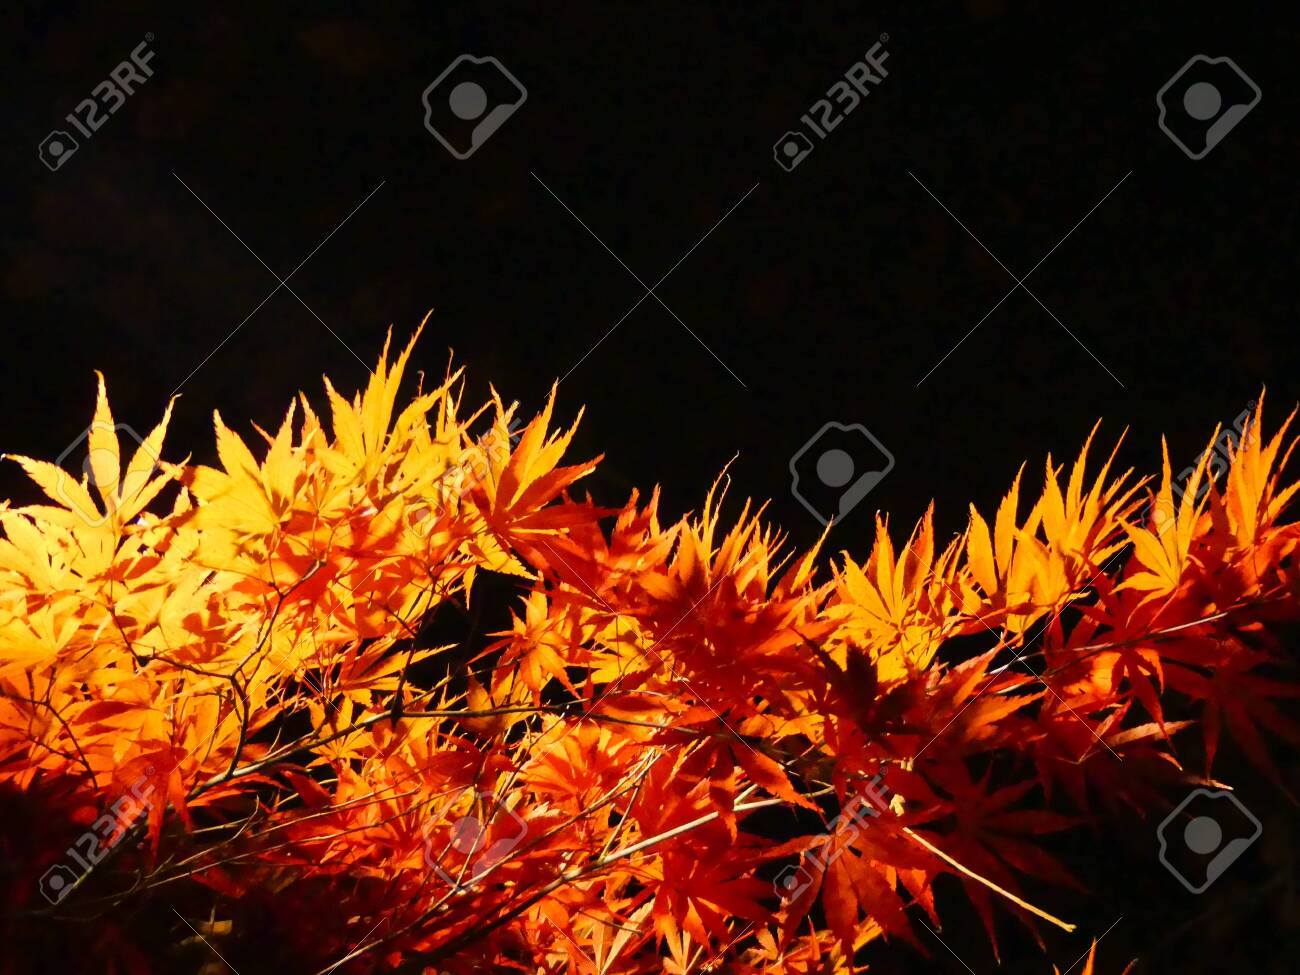 Orange Red Autumn Maple Leaves On Black Background Copy Space Stock Photo Picture And Royalty Free Image Image 122844499